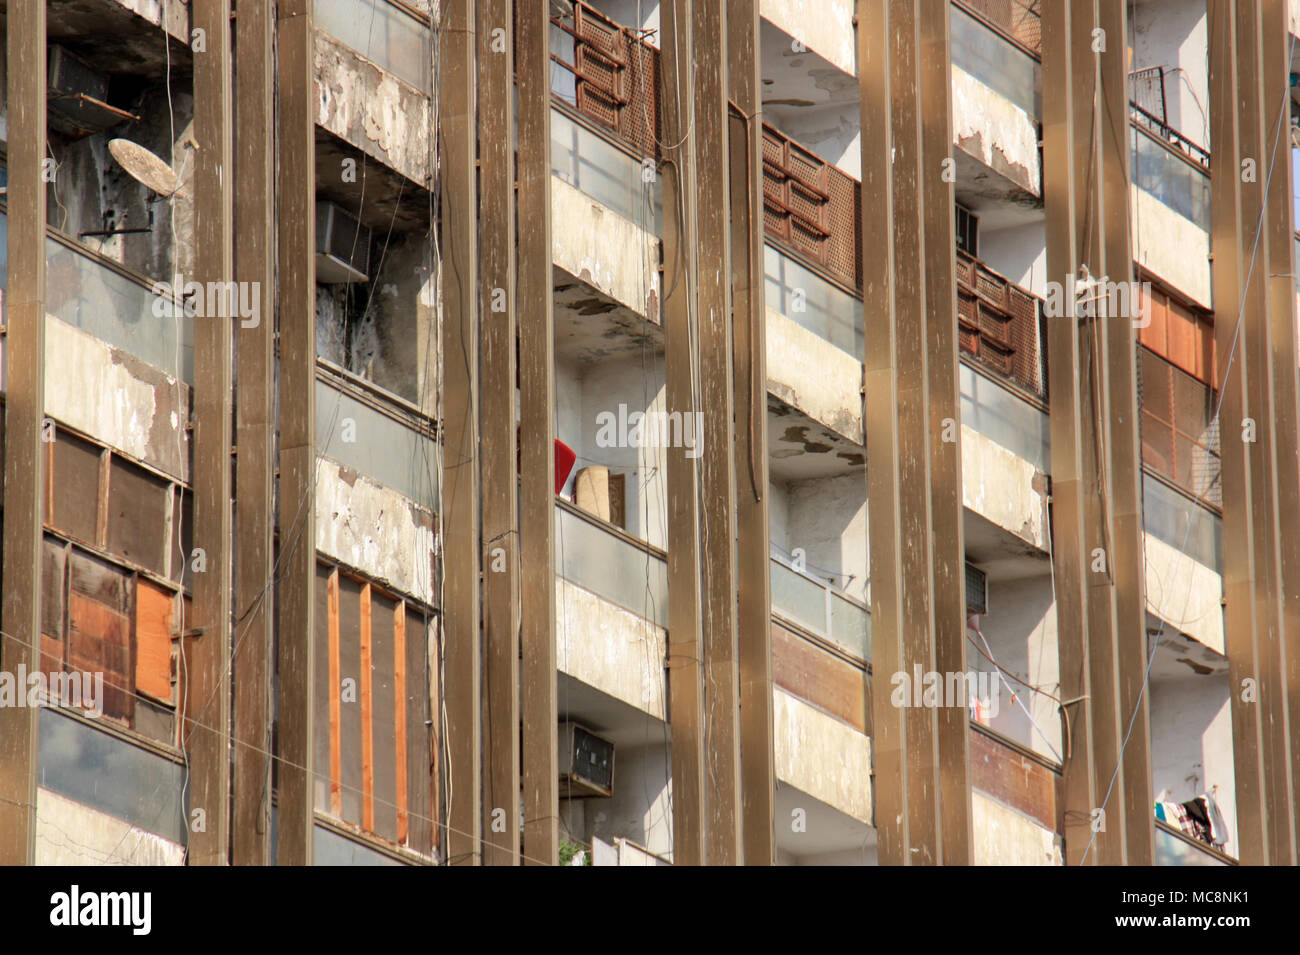 Balconies on an Worker's Apartment Building in Jeddah - Stock Image